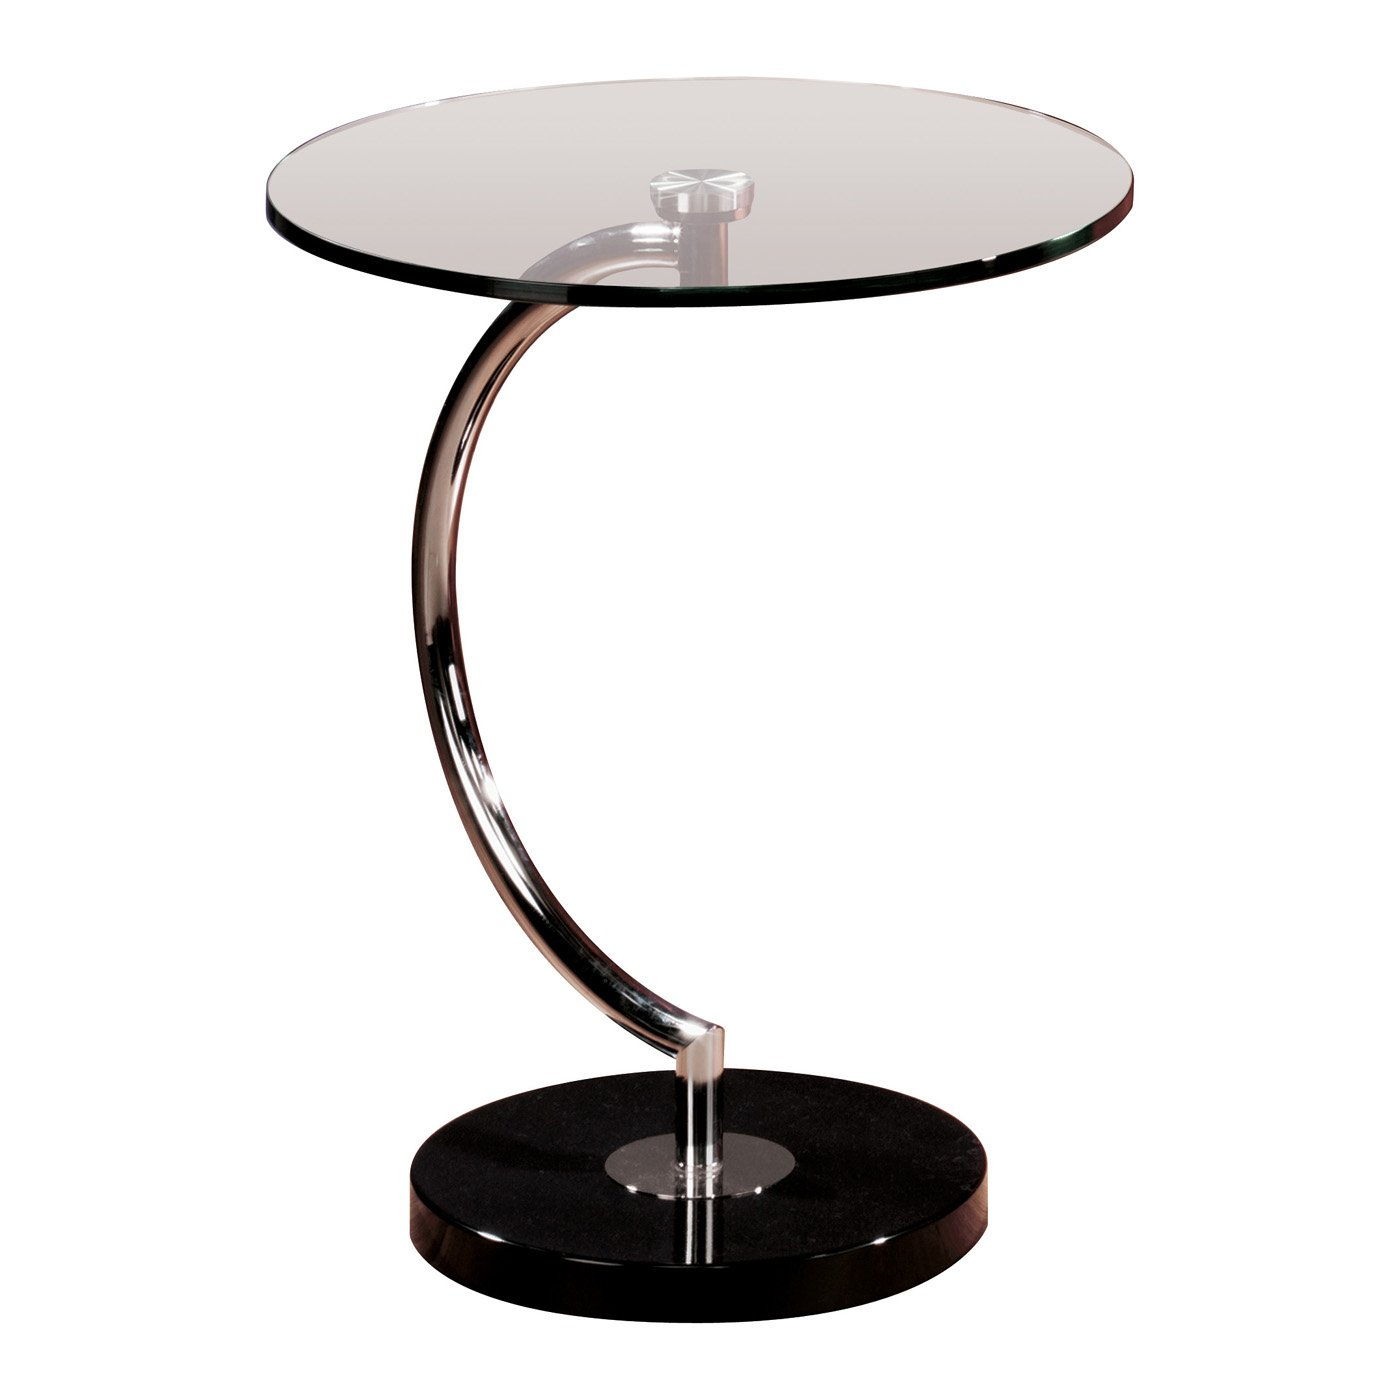 close acrylic accent table black shaped target kitchen cart bedroom wall clock bar height outdoor bayside furnishings cabinet oriental ginger jar lamps cherry wood furniture ocean